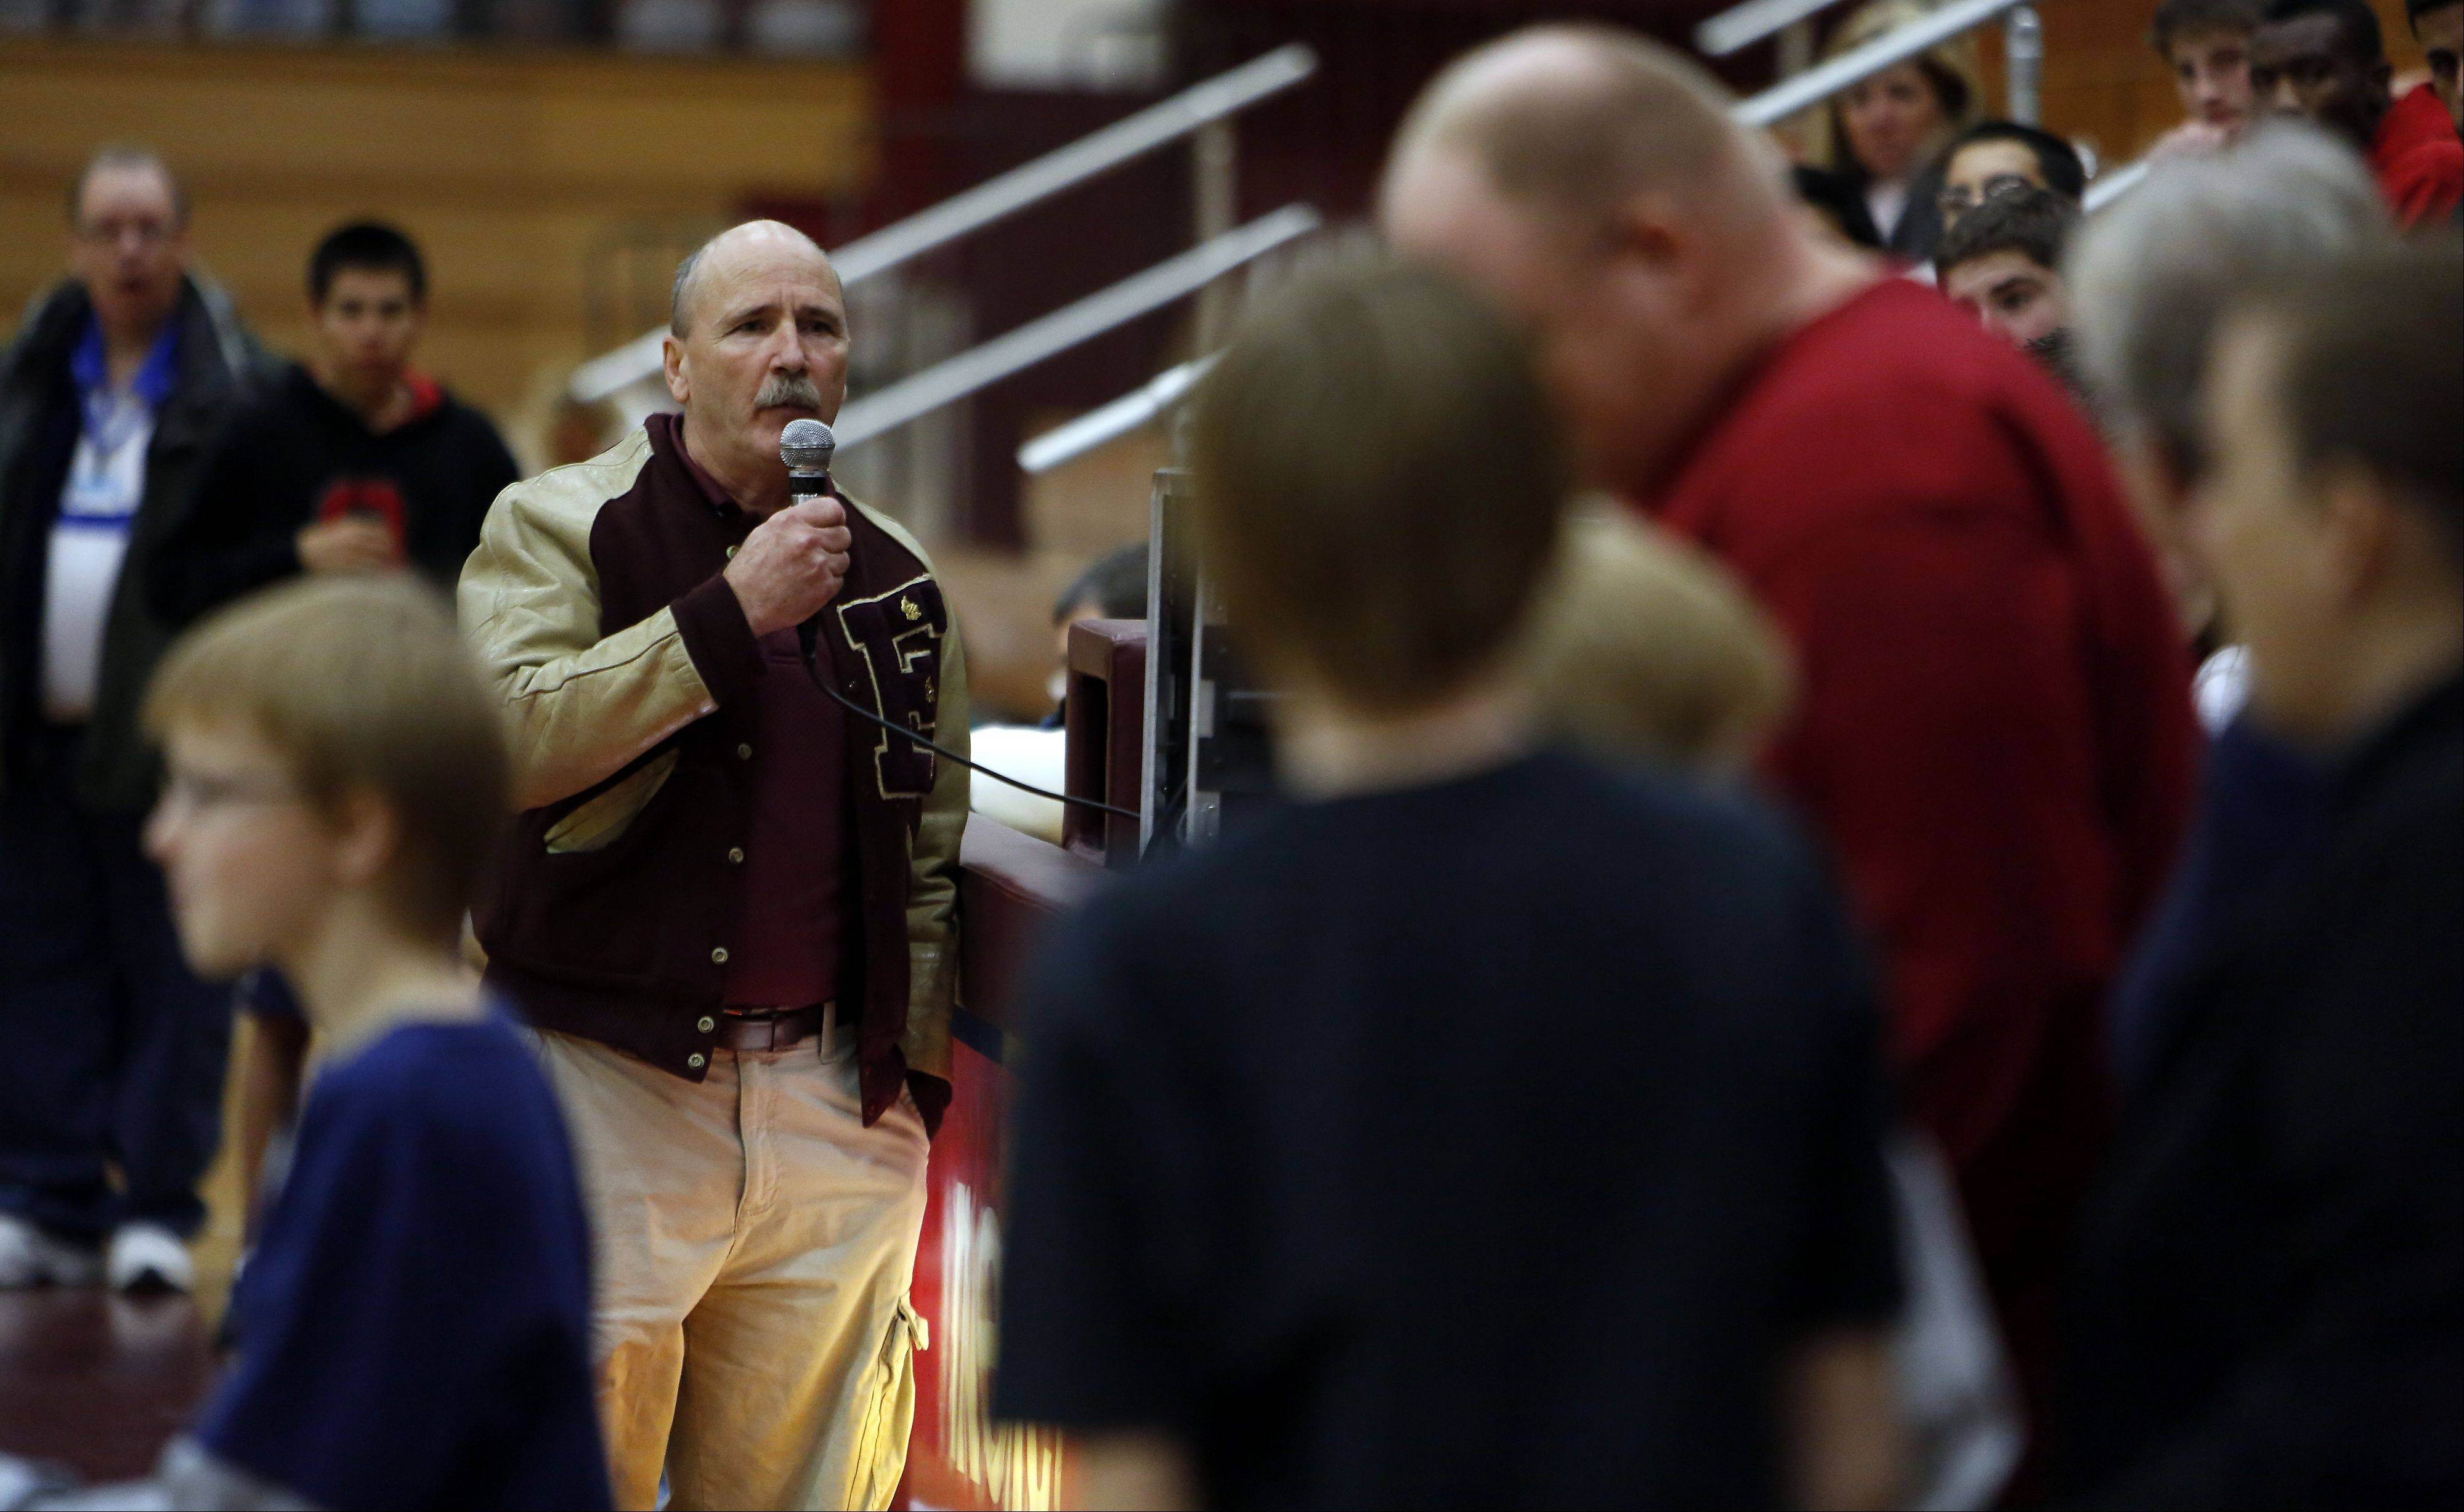 Elgin wrestling coach Tom Stewart brings some of the friends and family of past coach Irv Johnston onto the new mat during the 10th anniversary Remembrance match Friday at Elgin High School against Bartlett.